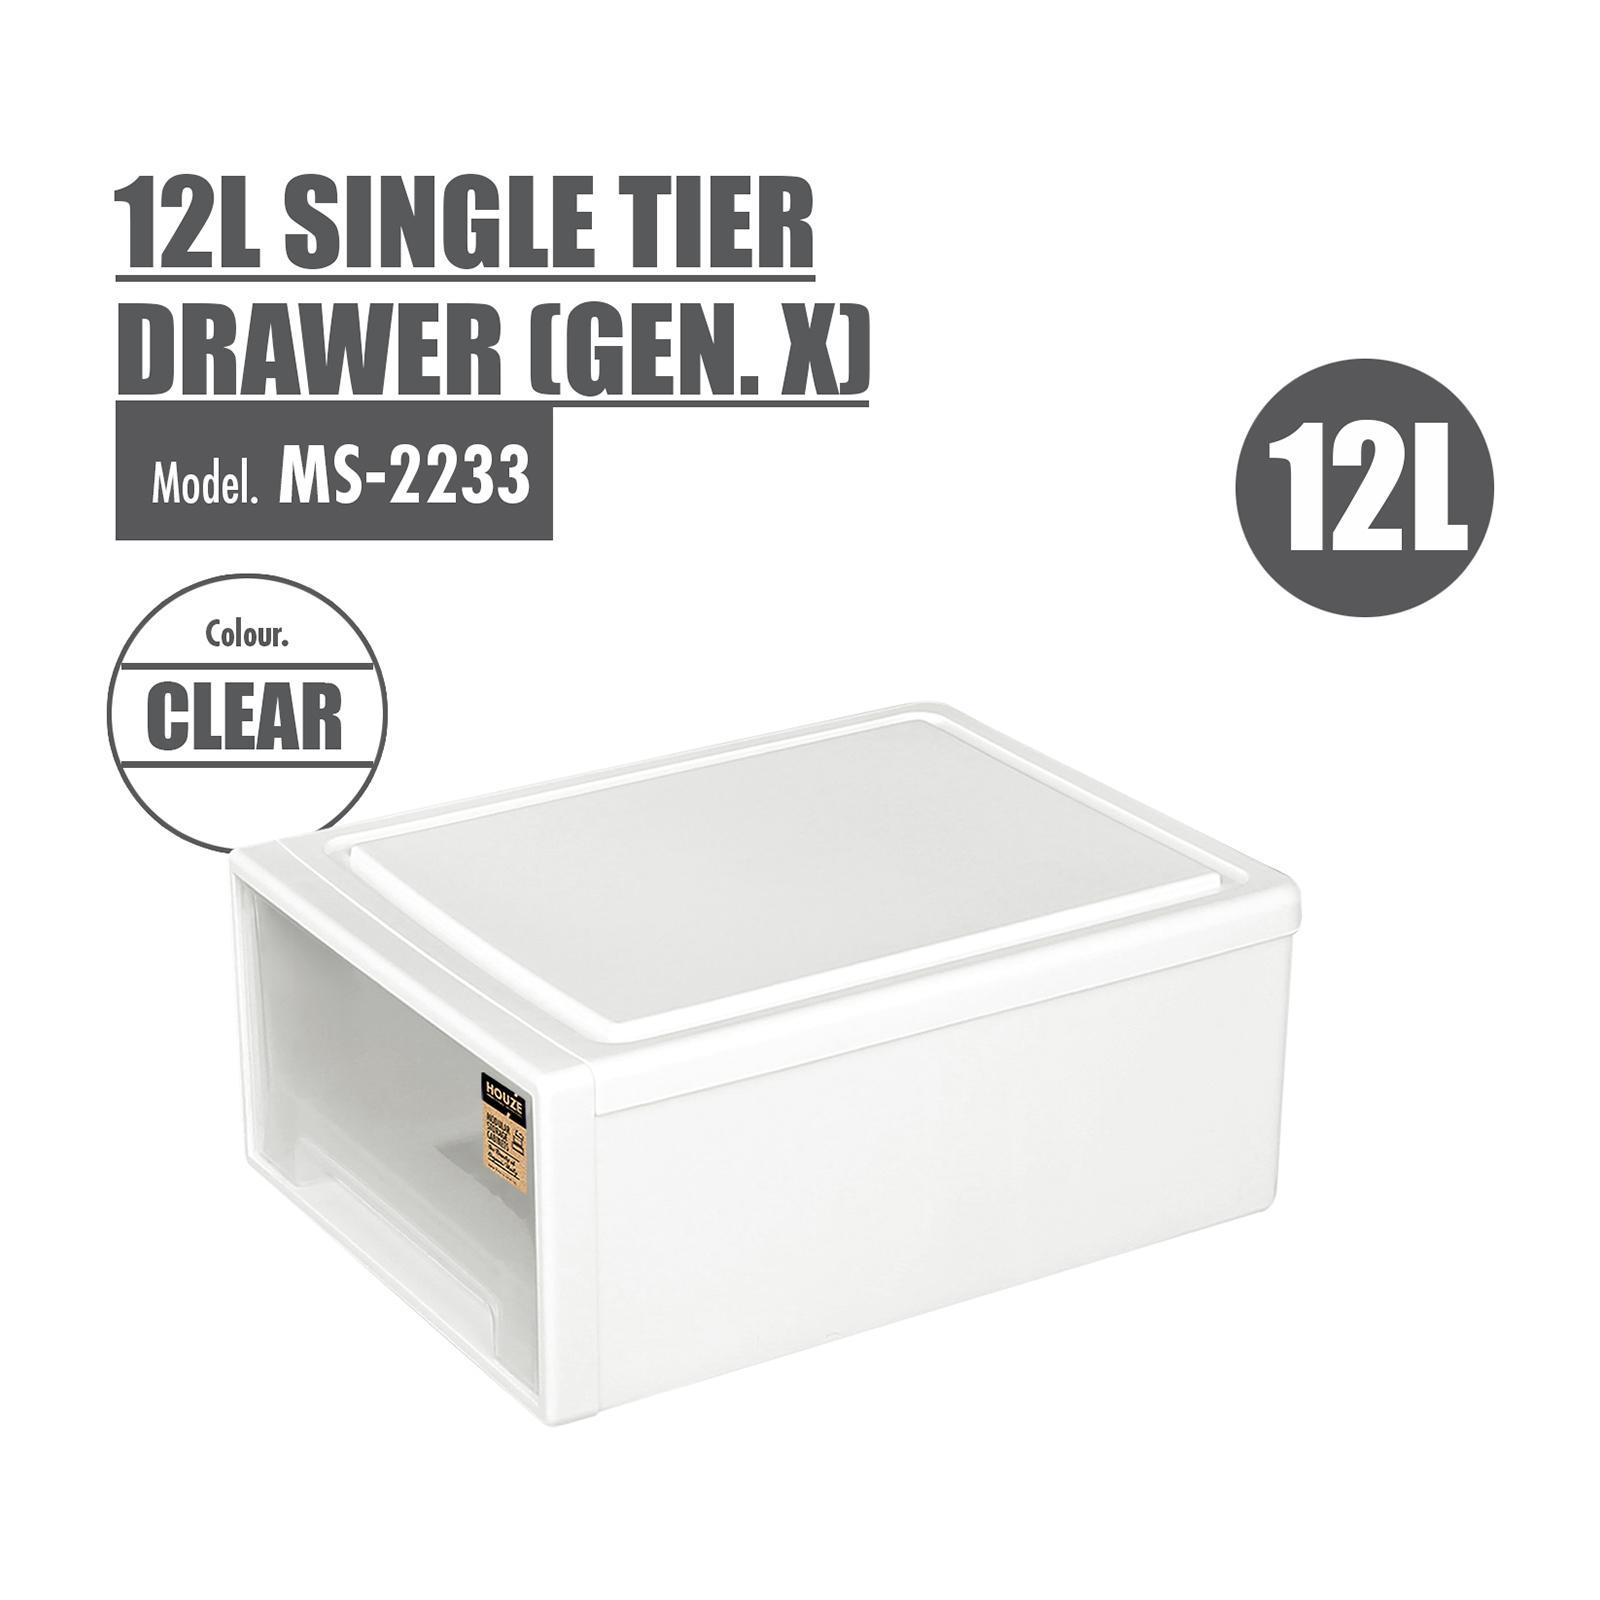 HOUZE - 12L Single Tier Drawer - Gen. X -Dim: 37x25.5x14cm - MS-2233-CLEAR